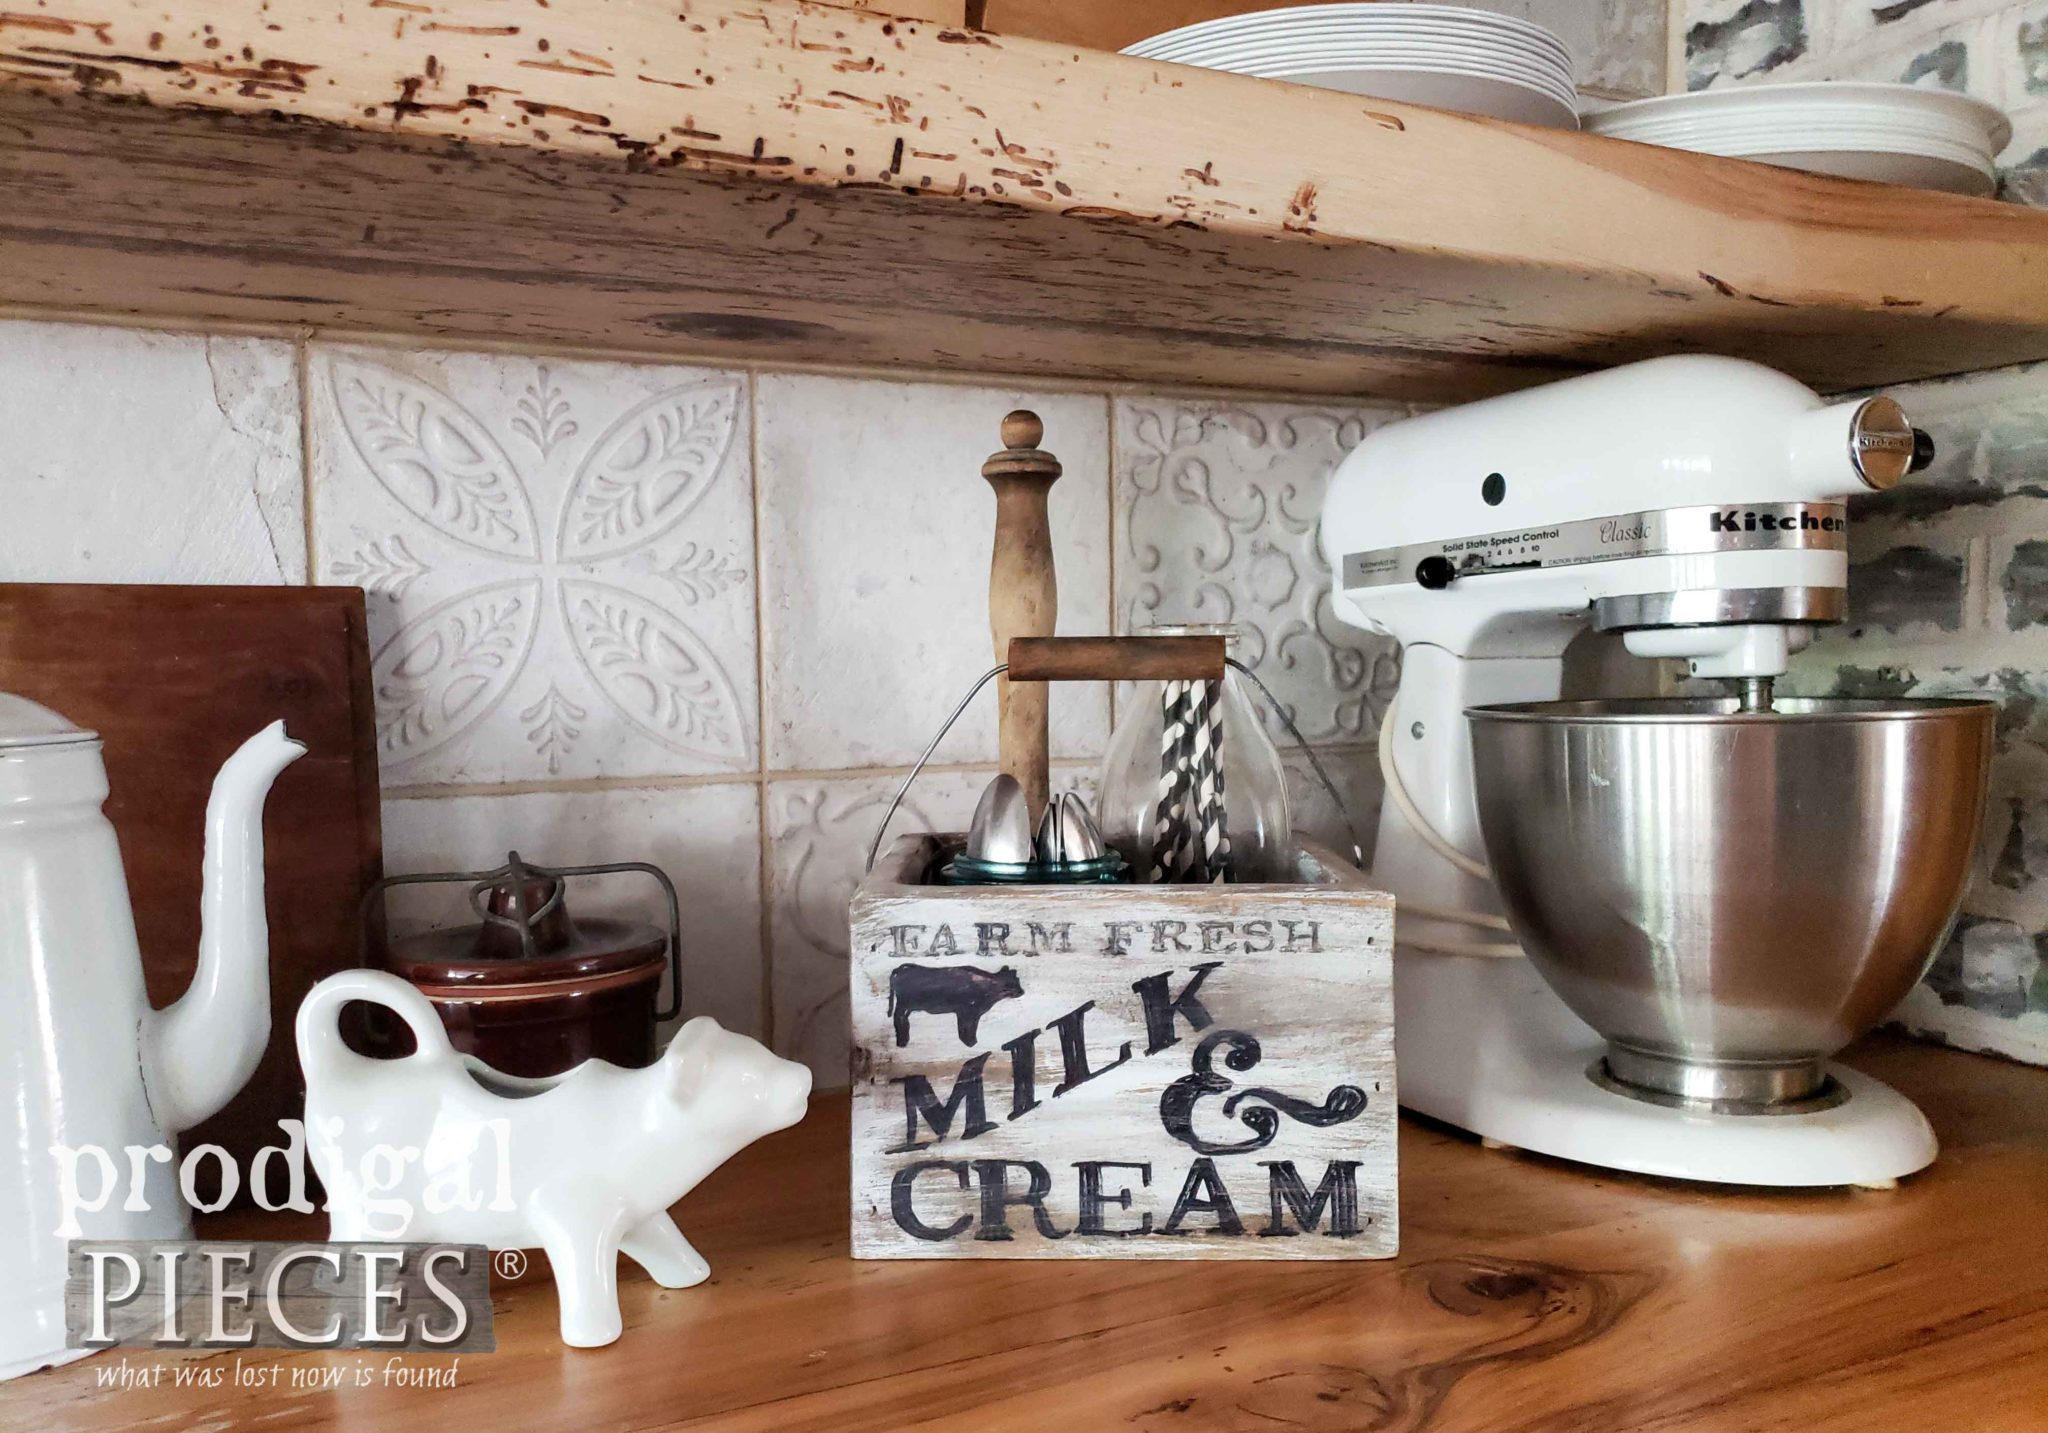 Farmhouse Style Kitchen Storage with Video Tutorial by Larissa of Prodigal Pieces | prodigalpieces.com #prodigalpieces #farmhouse #diy #home #homedecor #storage #kitchen